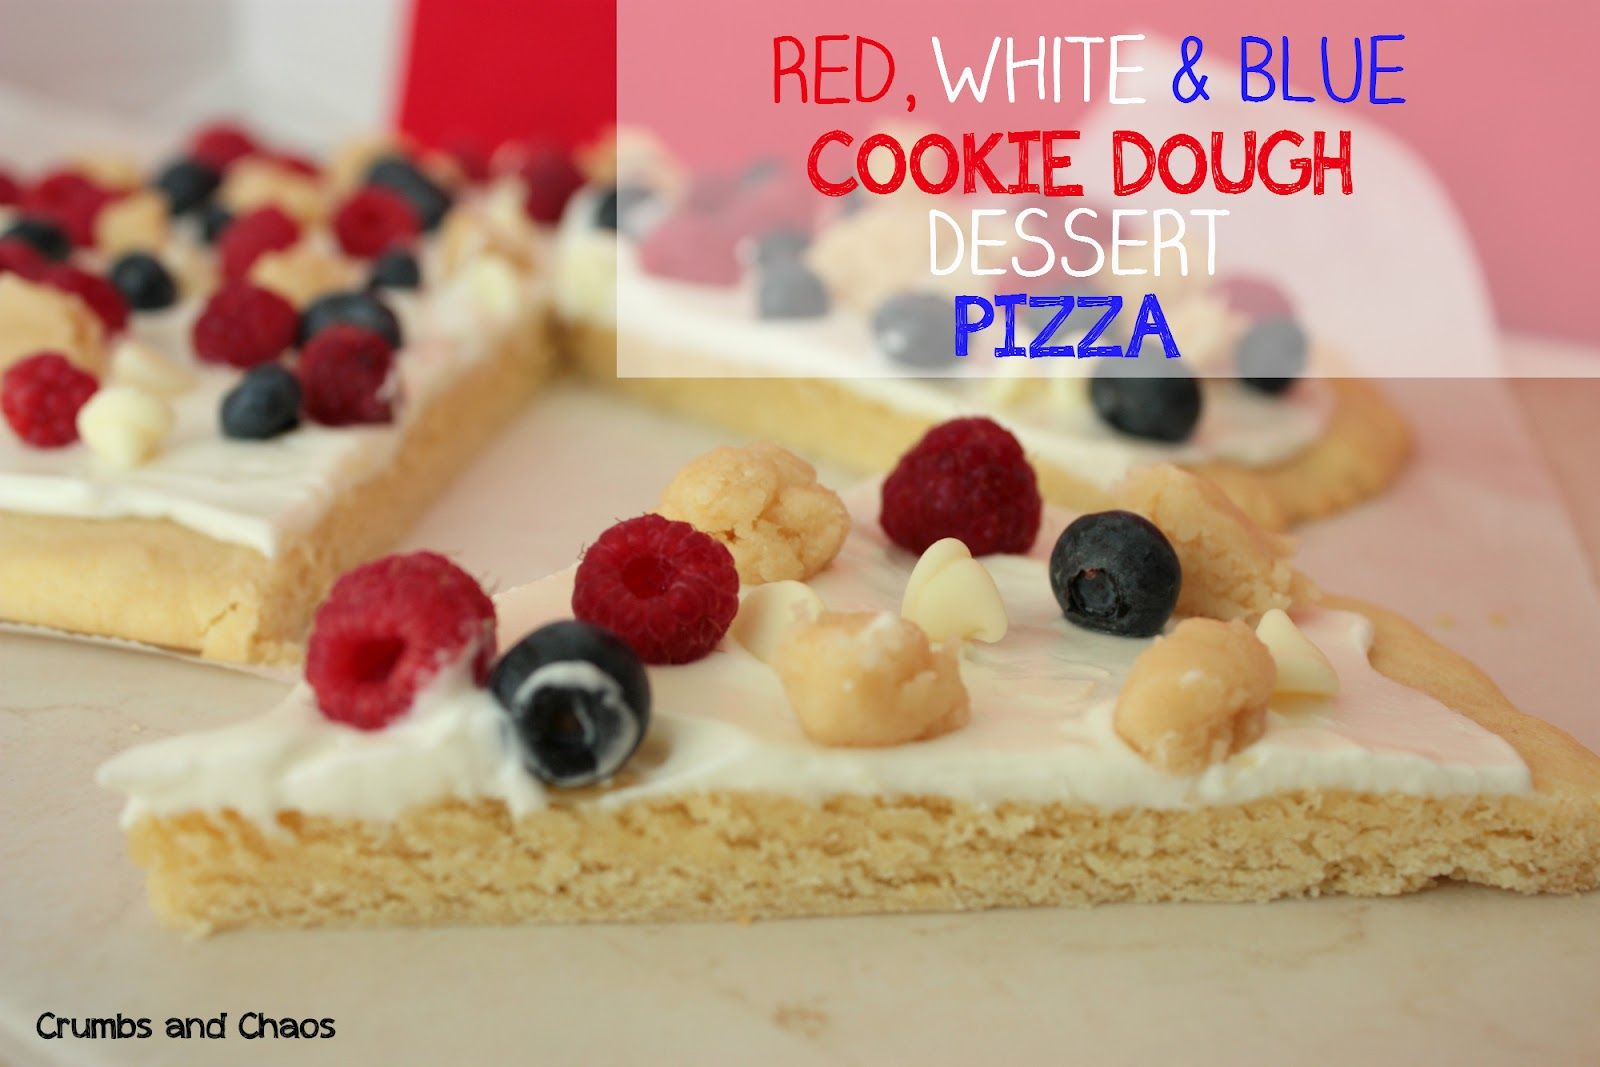 Crumbs and Chaos: Red, White & Blue Cookie Dough Dessert Pizza